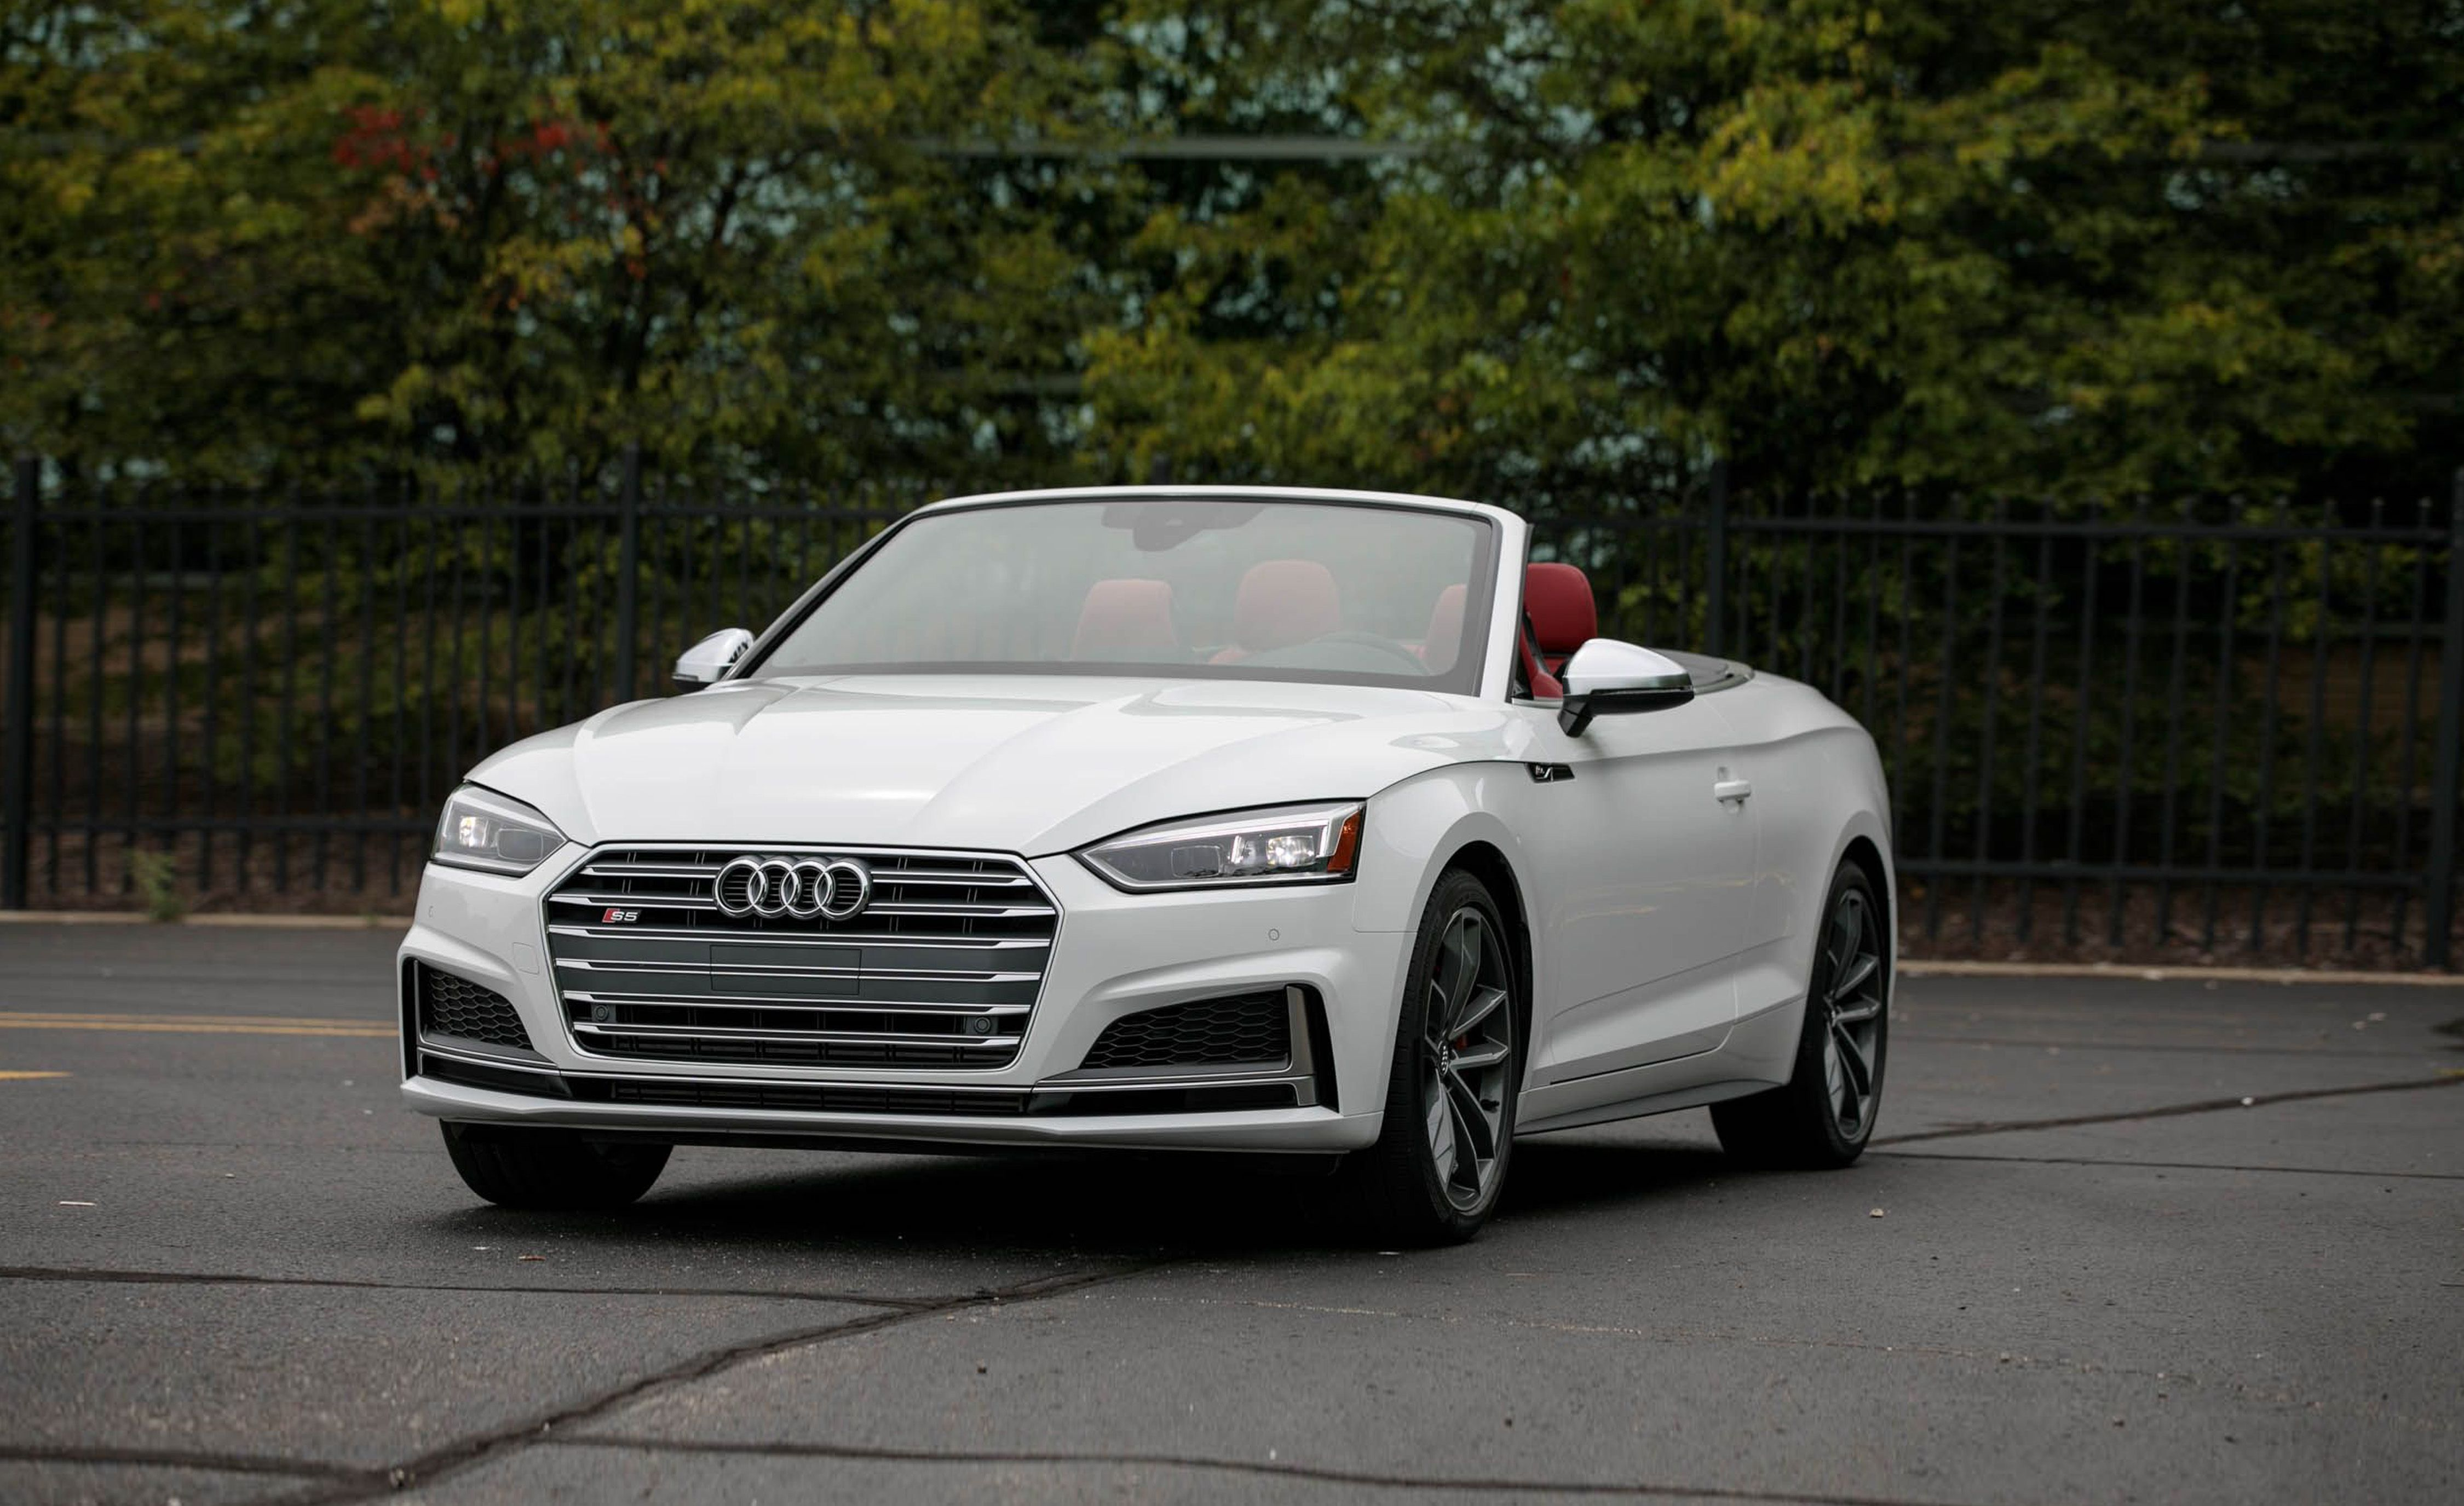 2019 Audi S5 Reviews | Audi S5 Price, Photos, and Specs ...